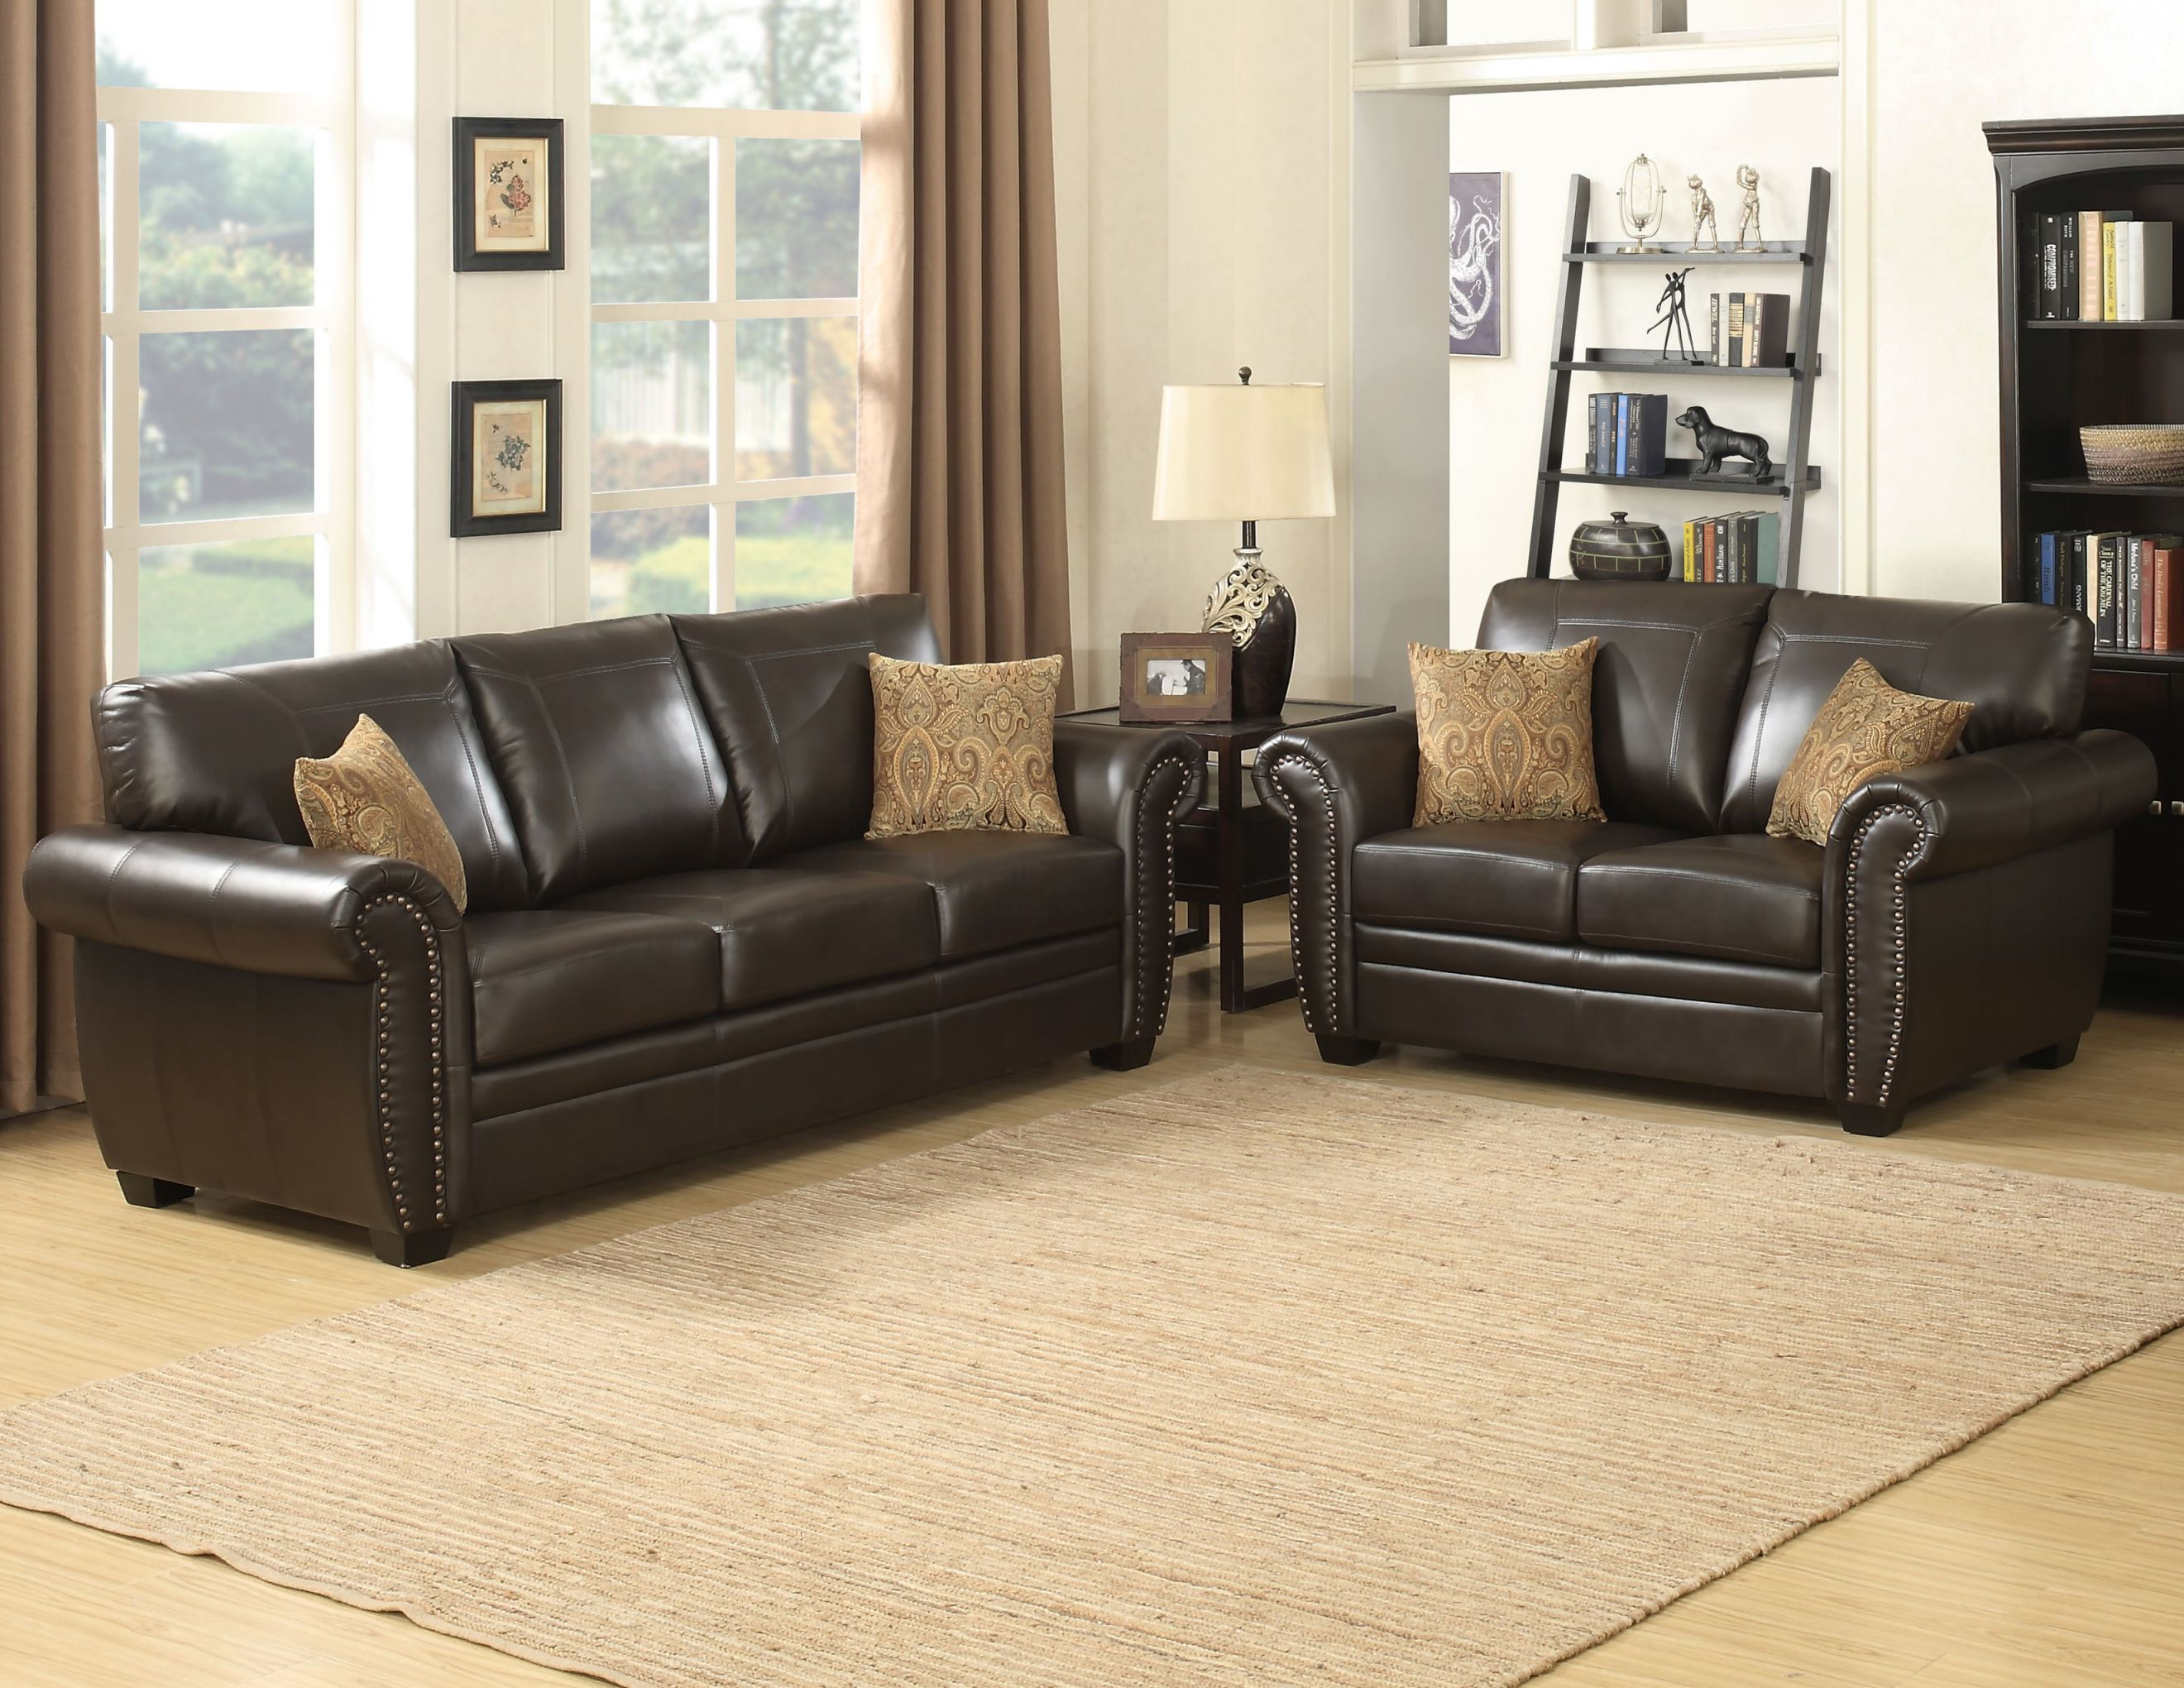 Louis Collection Traditional 2-Piece Upholstered Leather Living Room Set  With Sofa, Loveseat And 4 Accent Pillows, Brown within Leather Living Room Sets